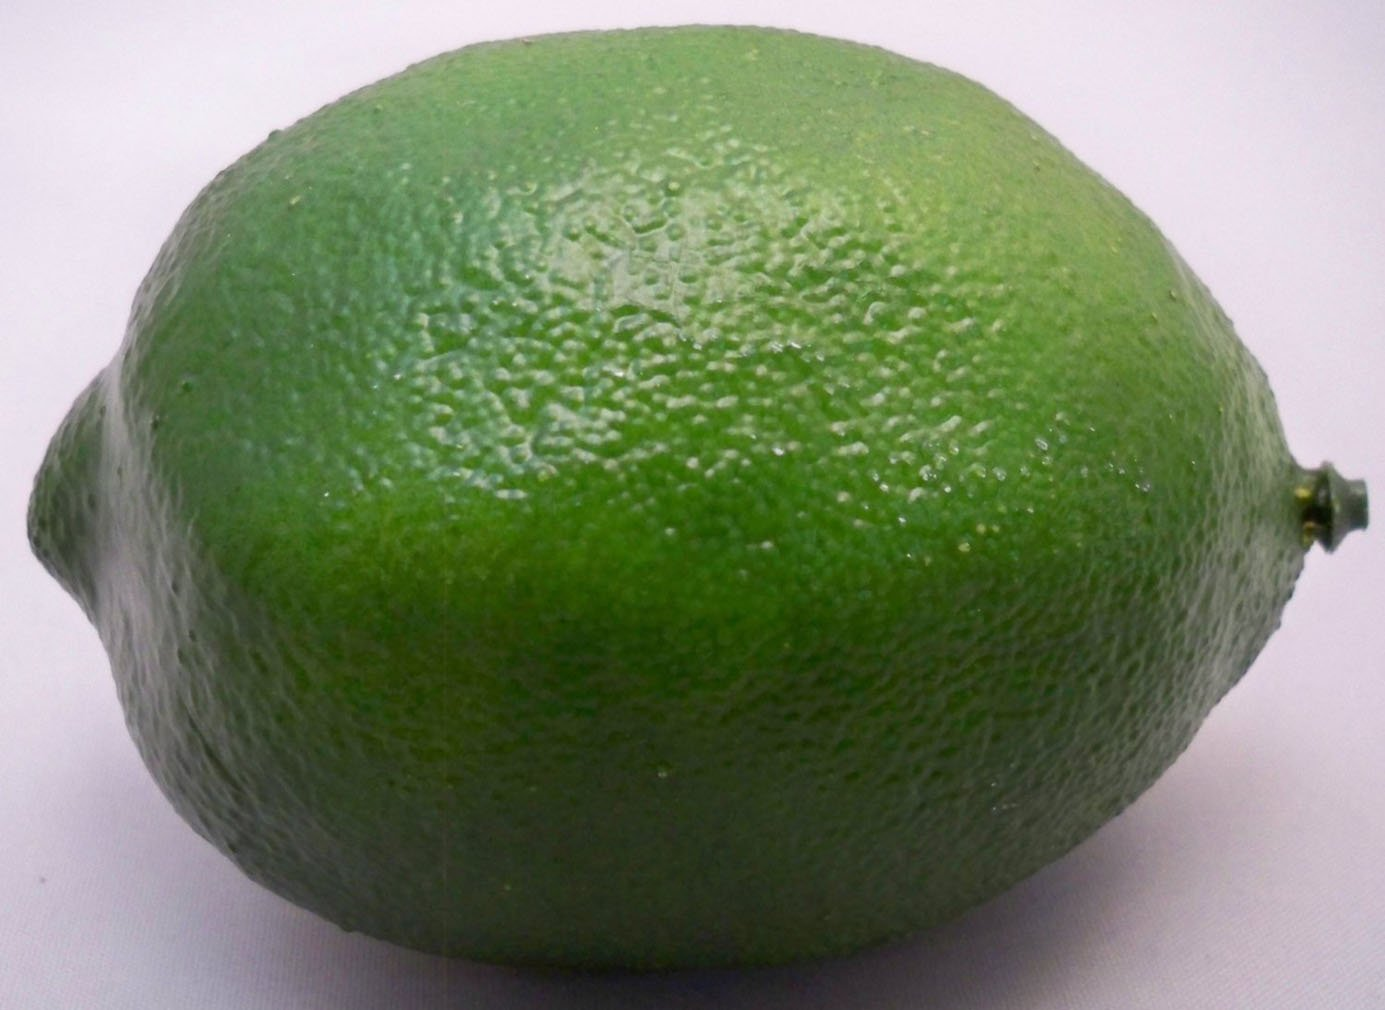 RuiChy 4 Large Best Artificial Limes Decorative Fruit by RuiChy (Image #2)